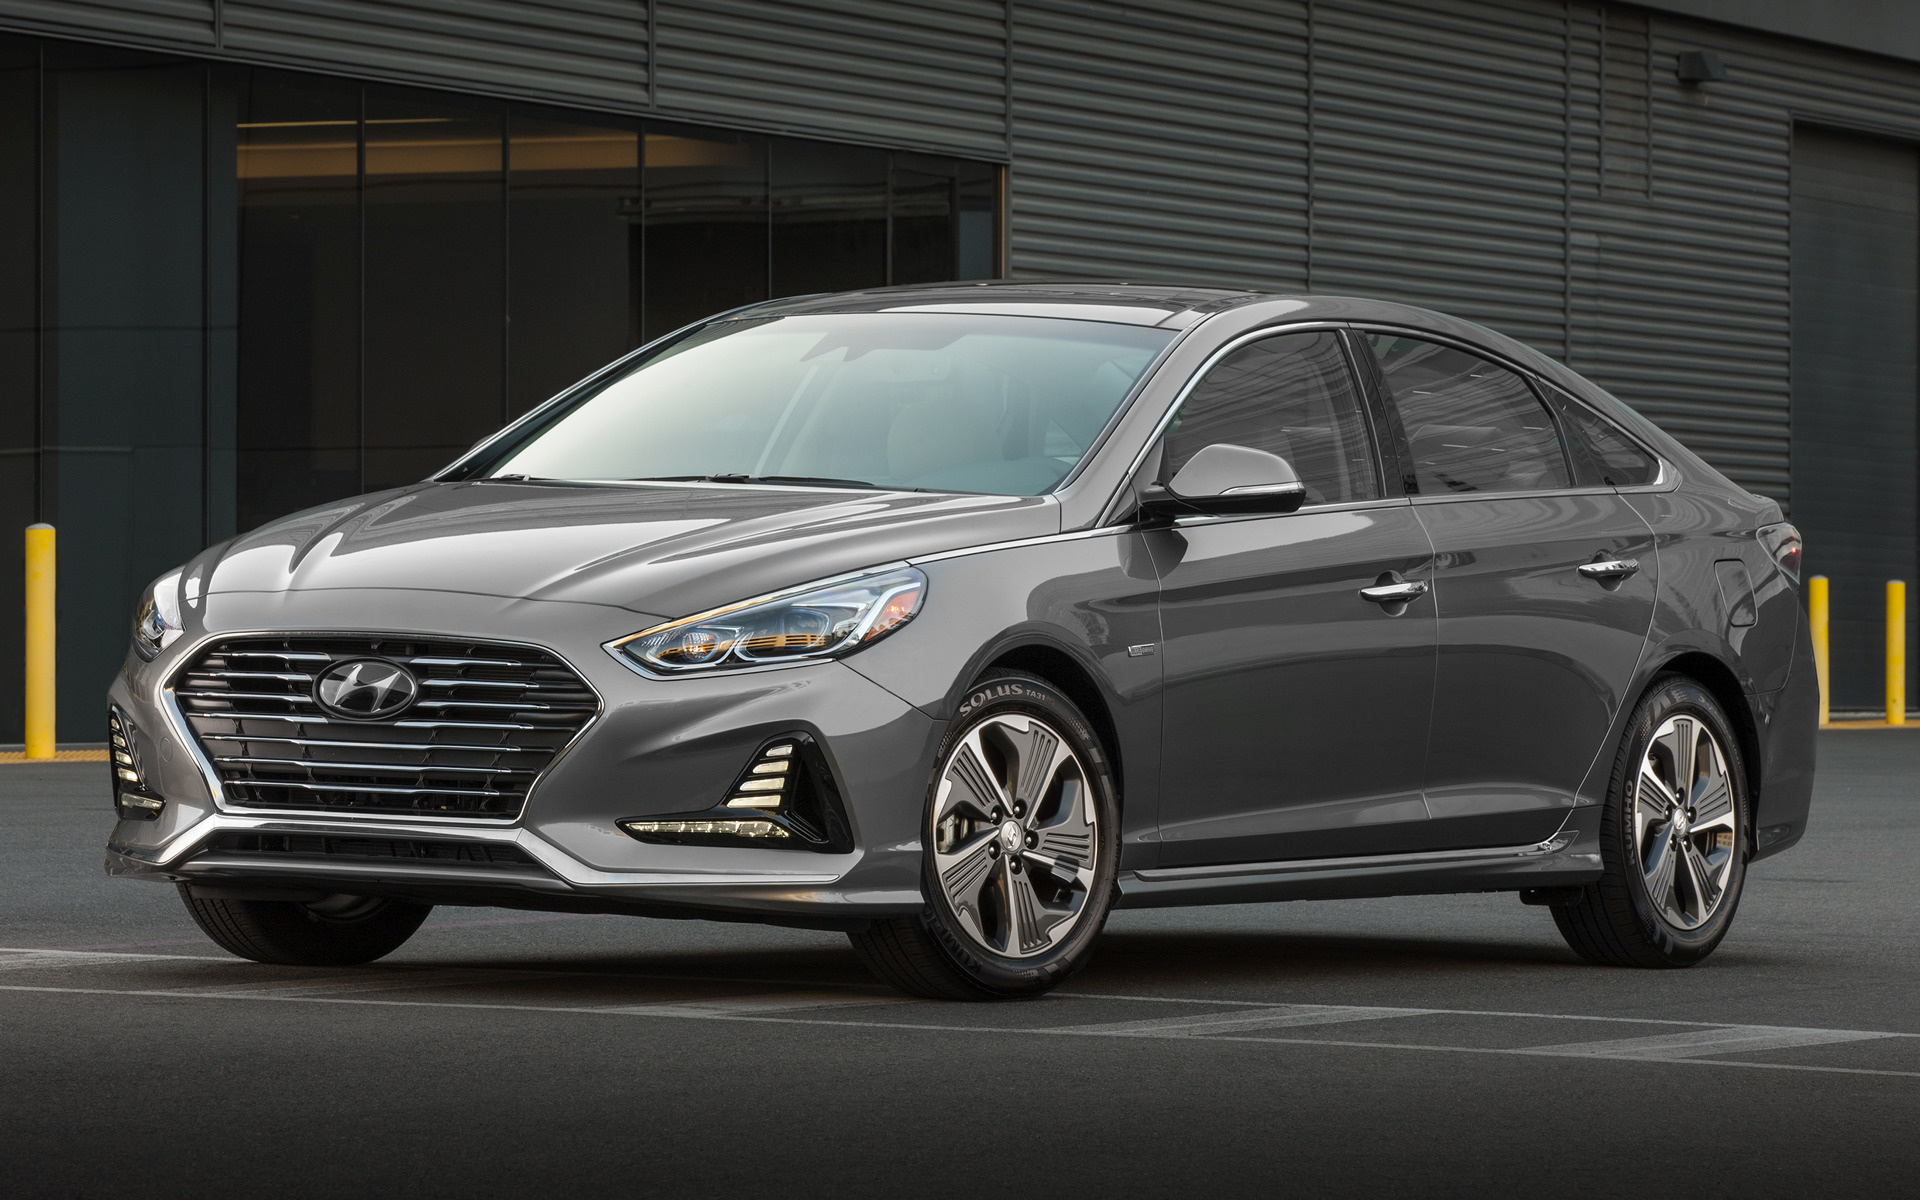 2018 Hyundai Sonata Hybrid - Wallpapers and HD Images ...